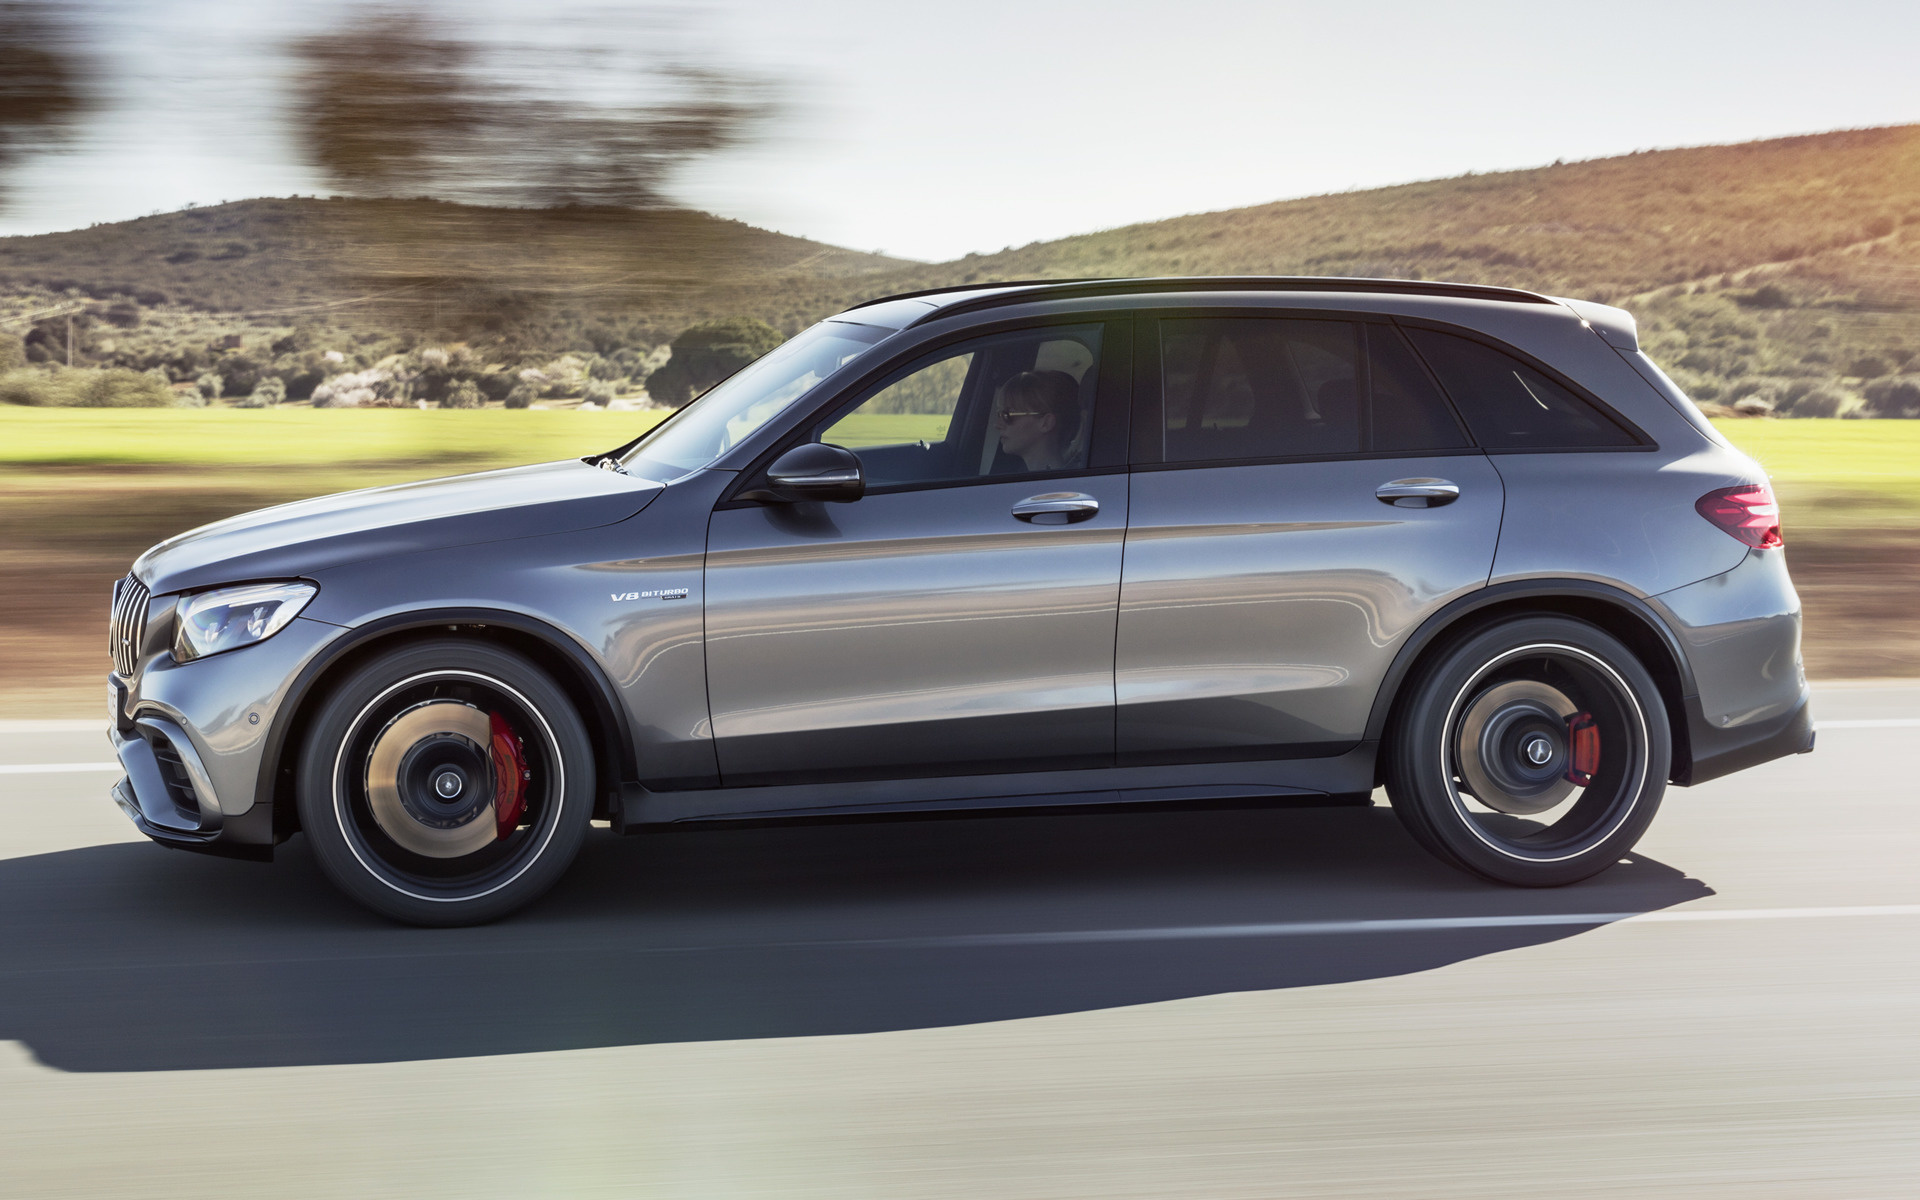 mercedes-amg glc 63 s (2017) wallpapers and hd images - car pixel